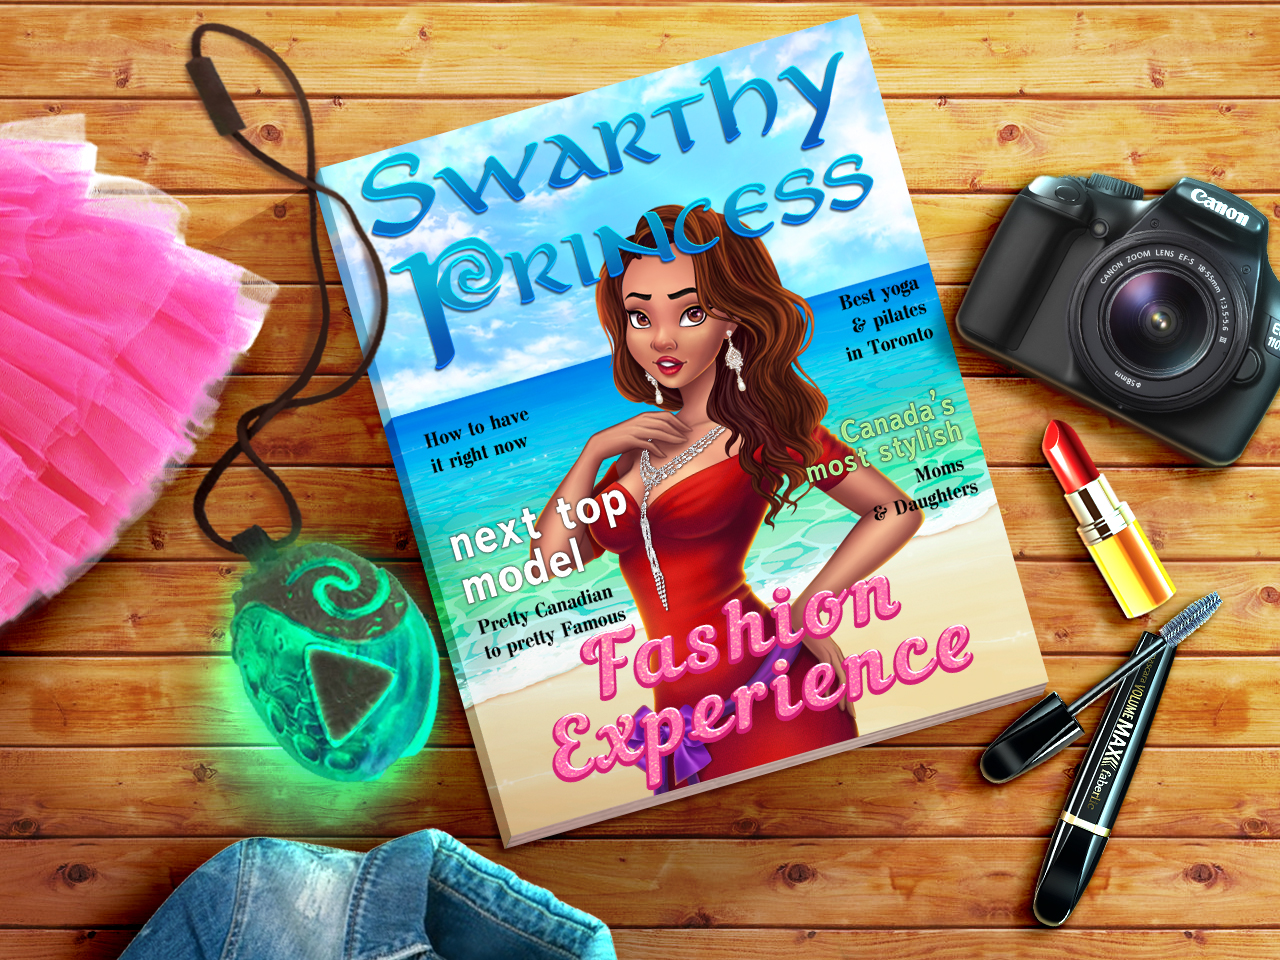 Swarthy Princess Fashion Experience